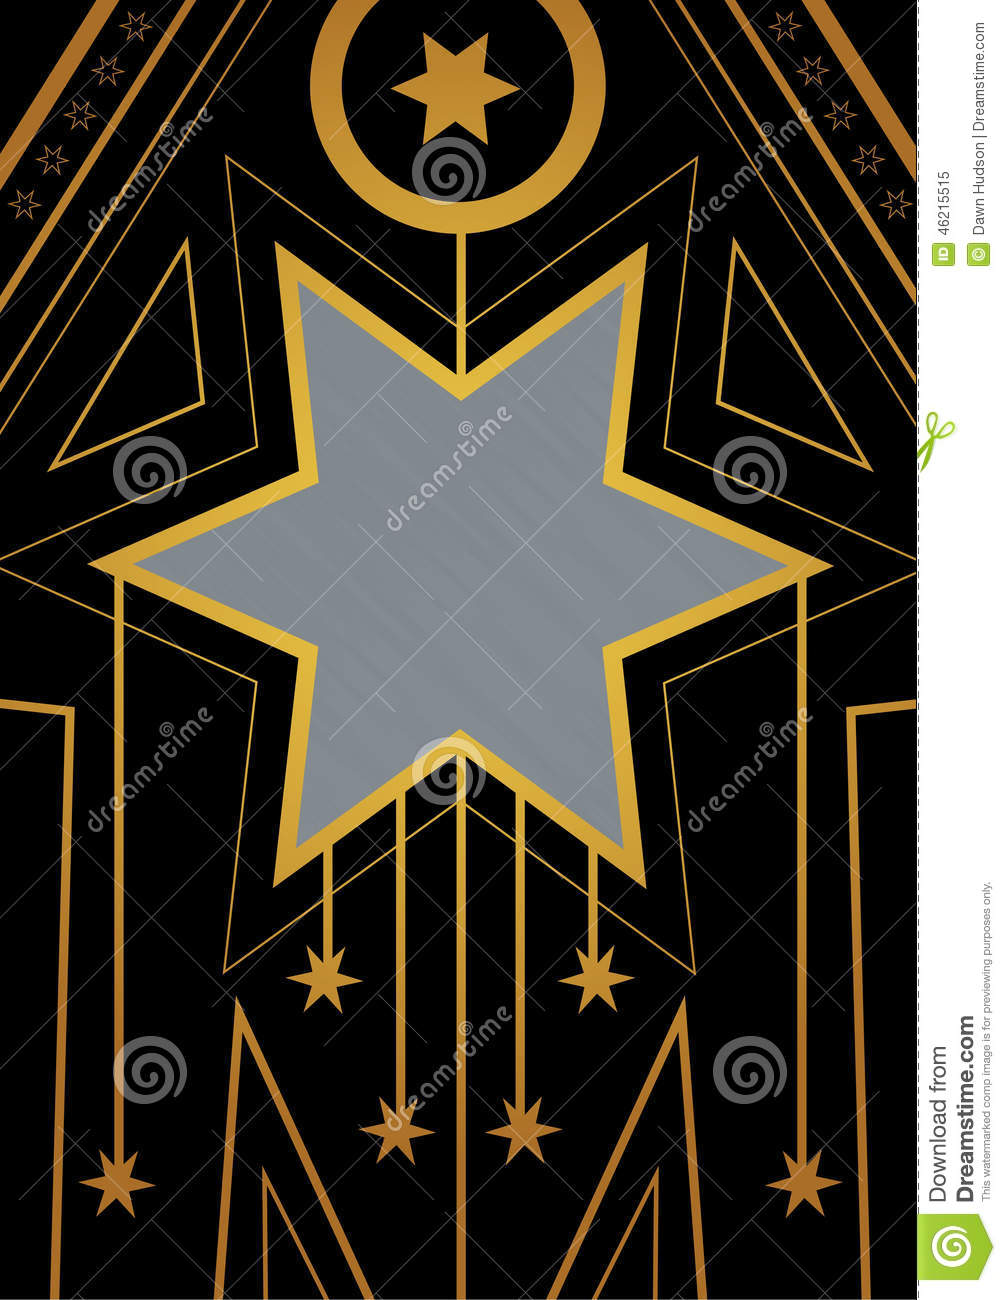 art deco christmas star border stock illustration image 46215515. Black Bedroom Furniture Sets. Home Design Ideas